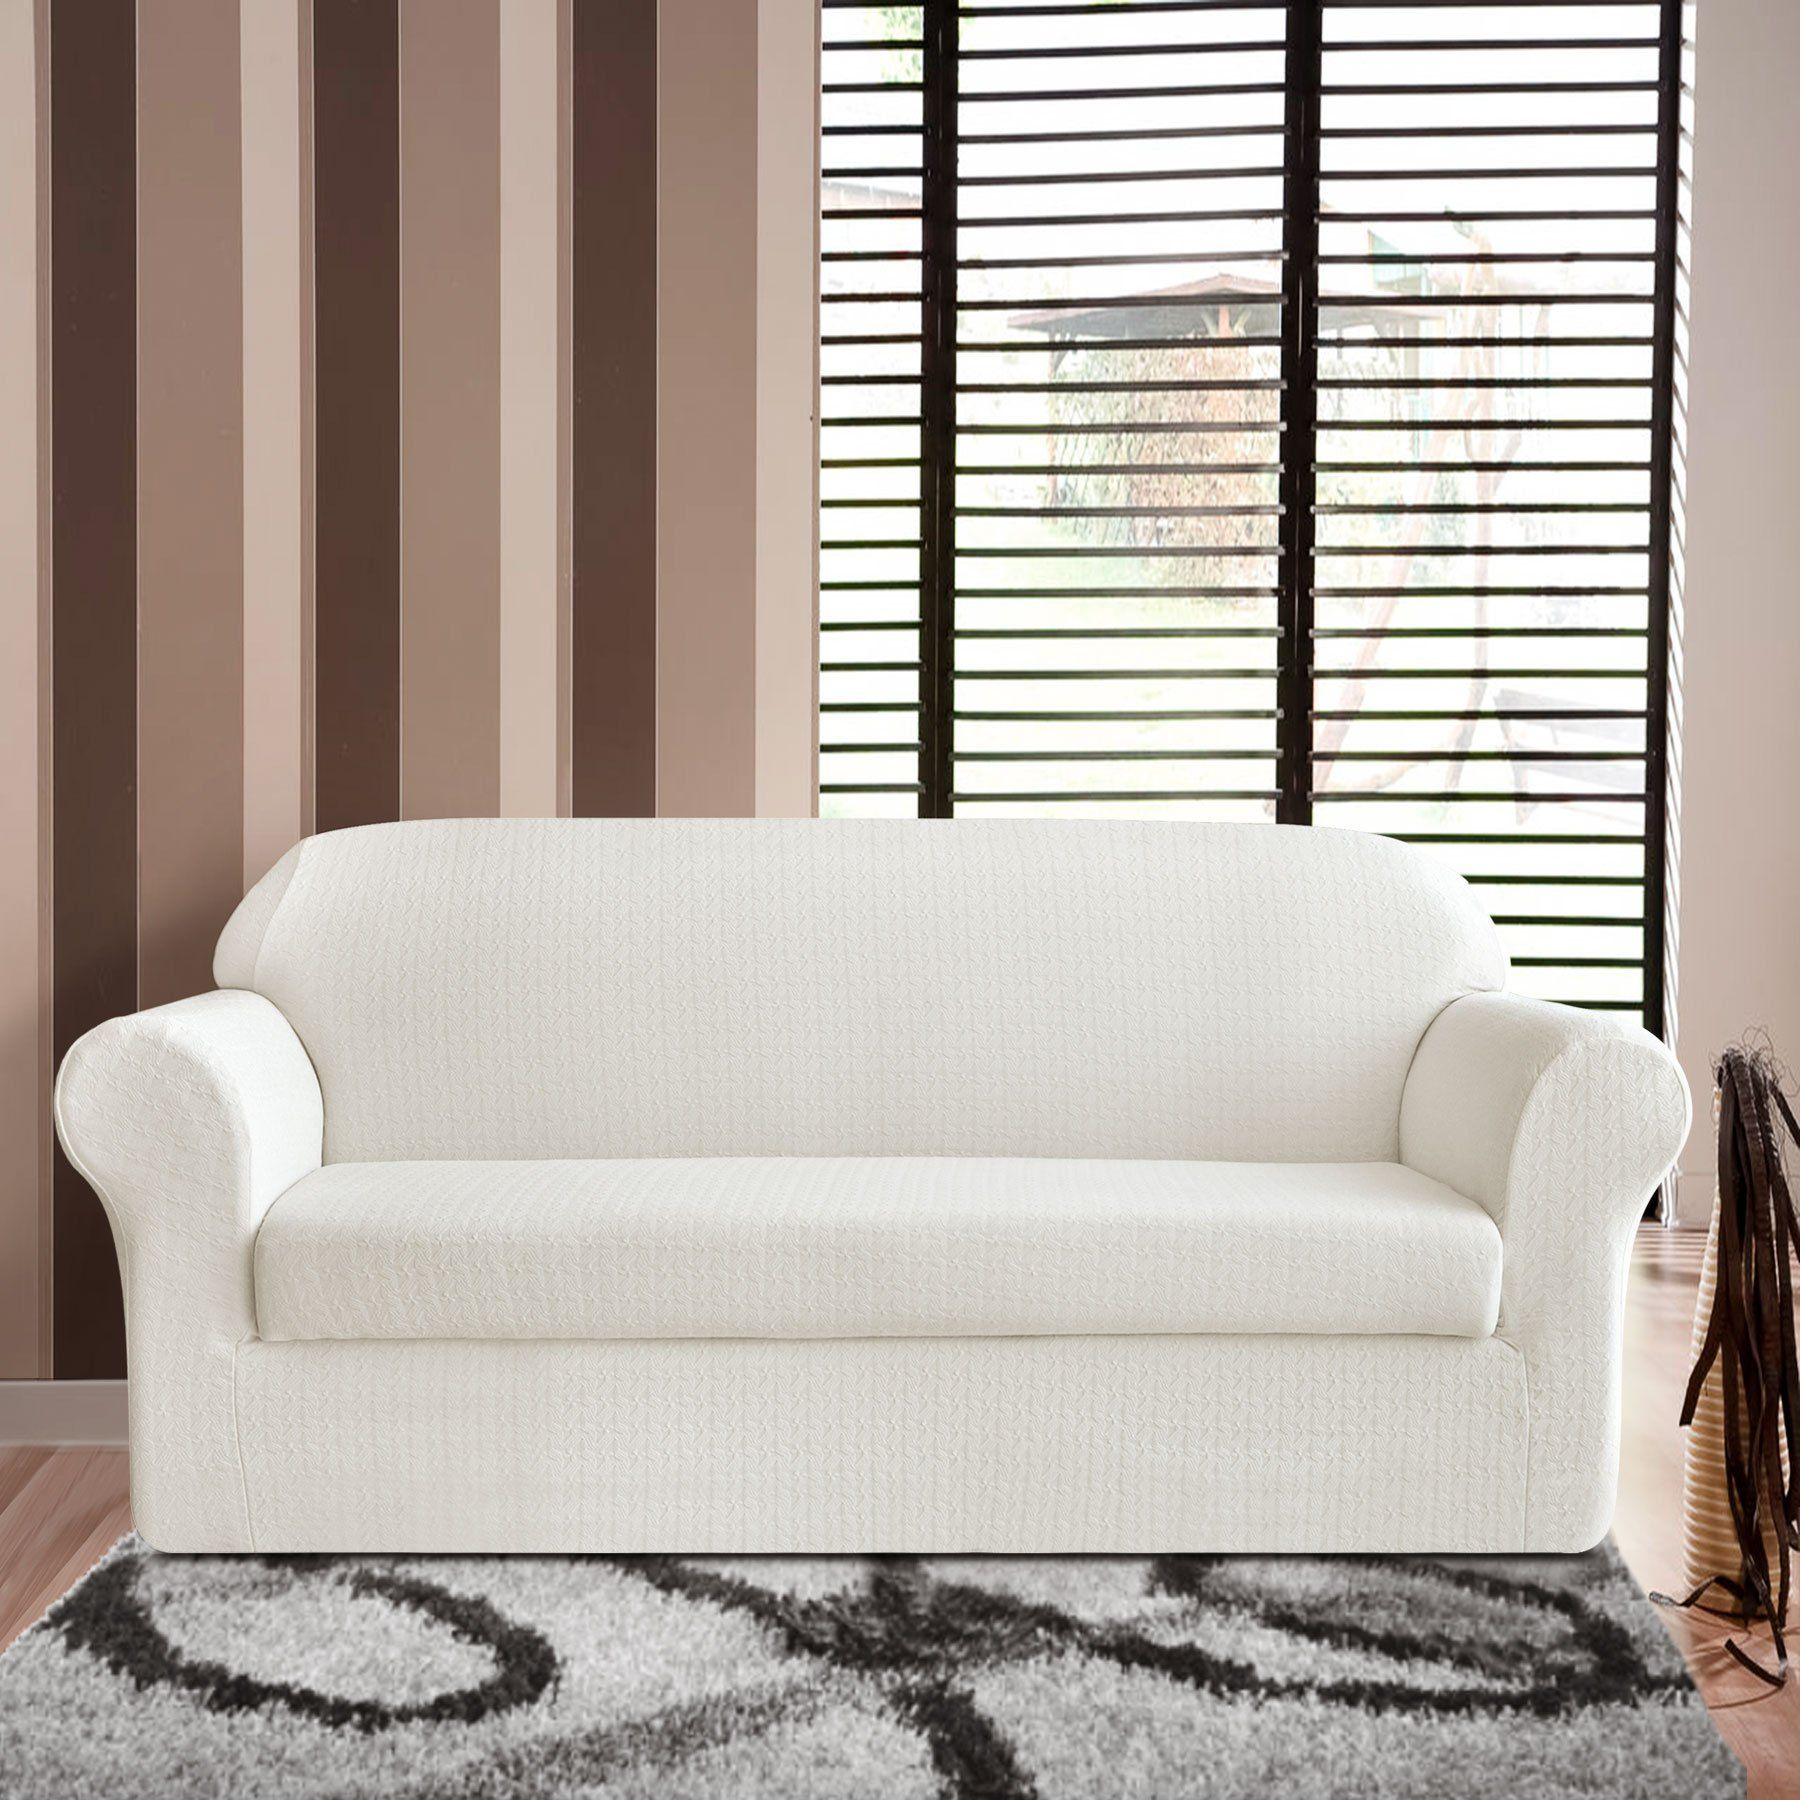 Outstanding Tikami 2Piece Jacquard Spandex Couch Covers Fitted Sofa Ncnpc Chair Design For Home Ncnpcorg